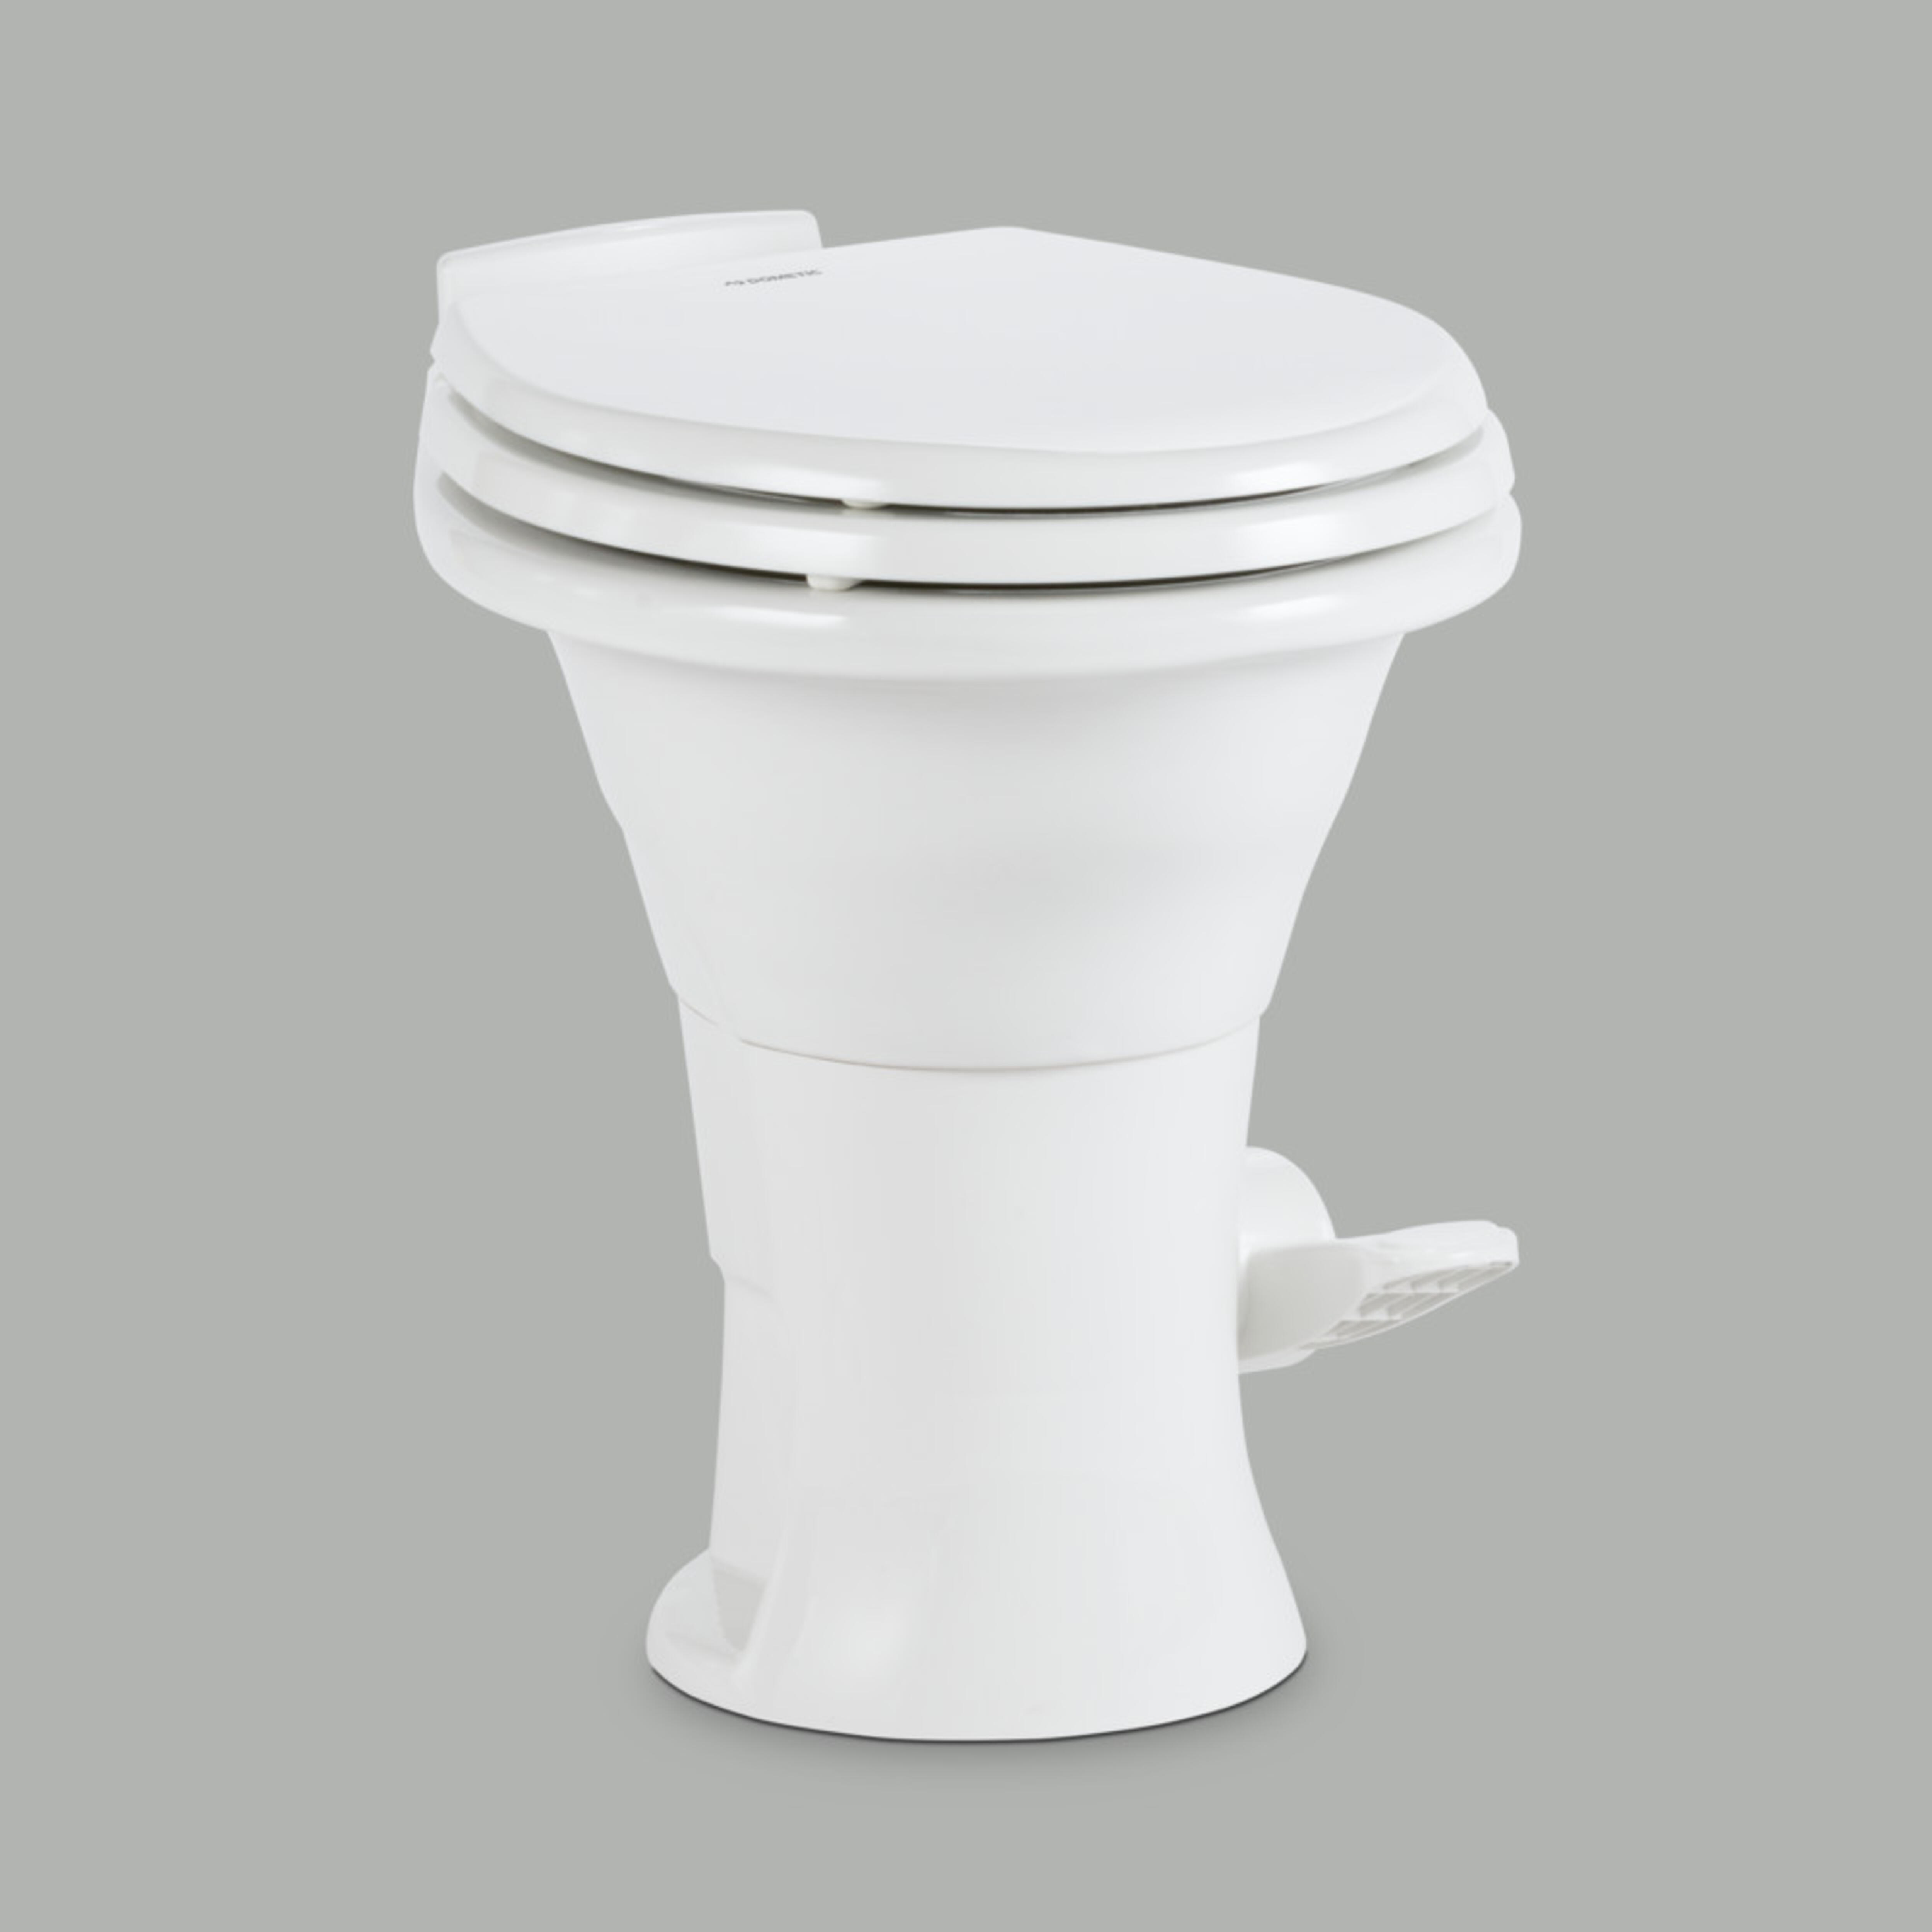 White Dometic 310 Series Standard Height Toilet